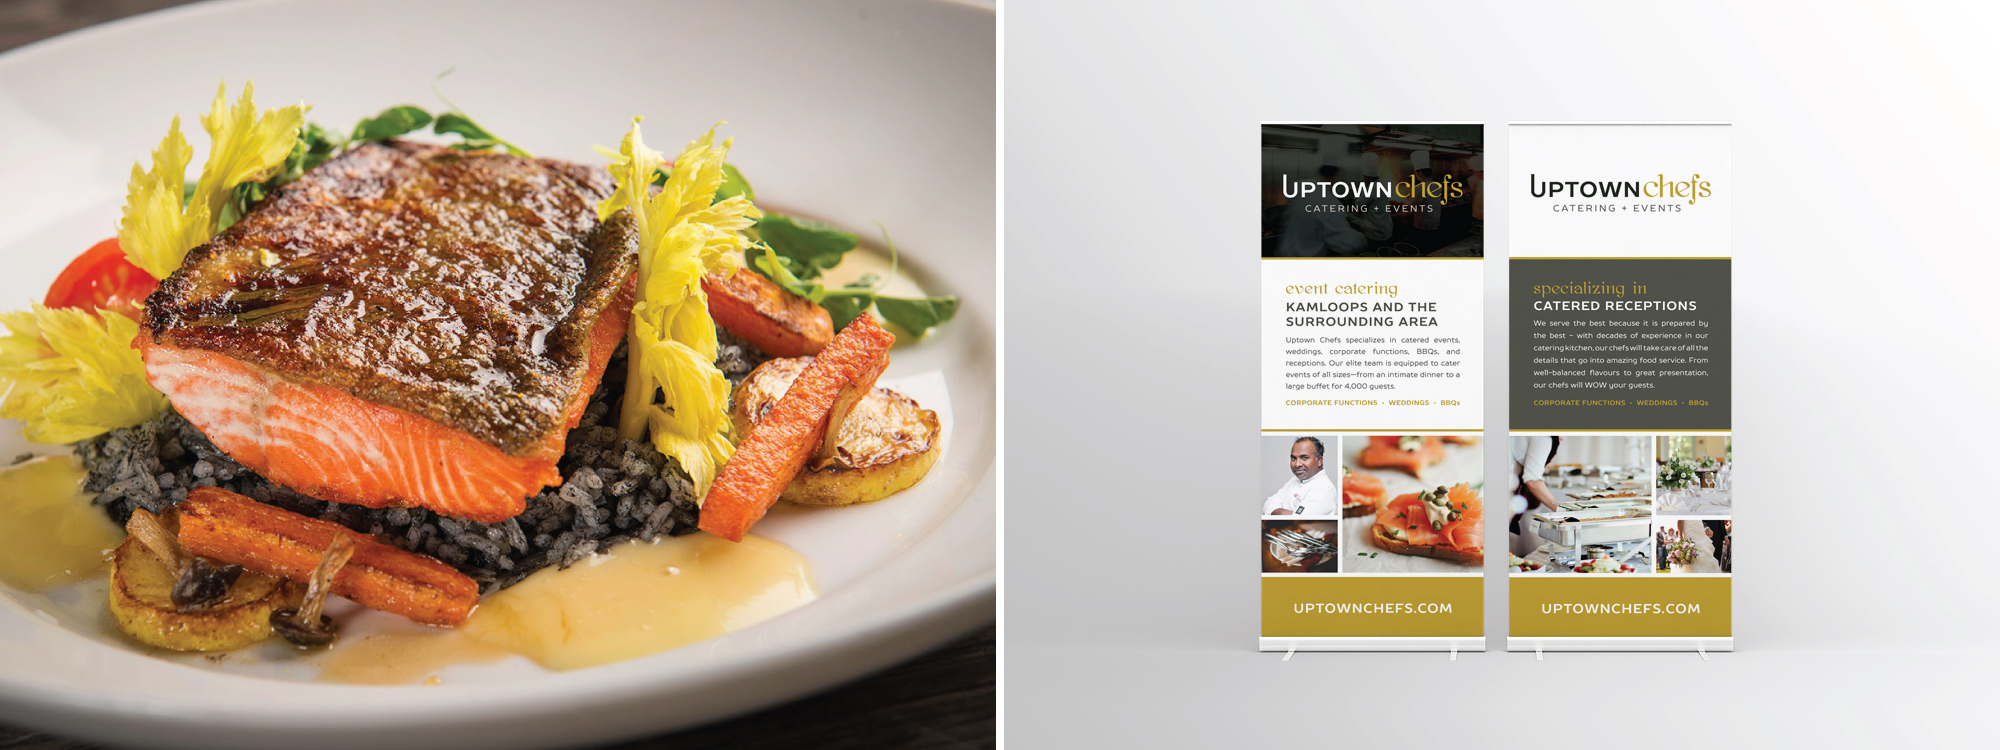 uptownchefs_banners_andimage